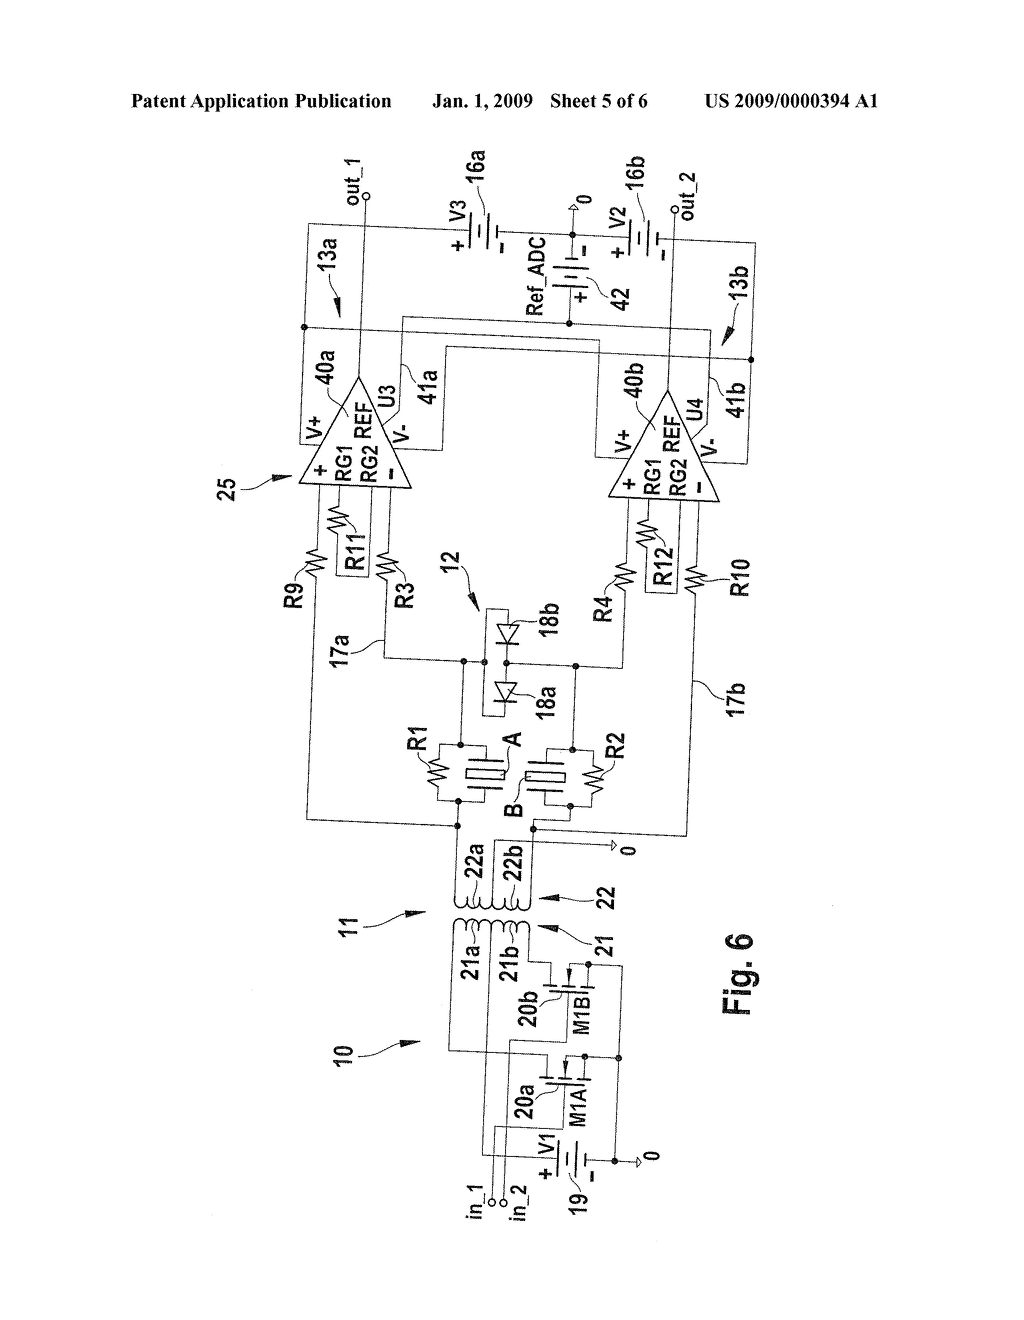 Ultrasonic Sensor With Reciprocal Transmitting And Receiving Circuit Diagram Schematic Image 06